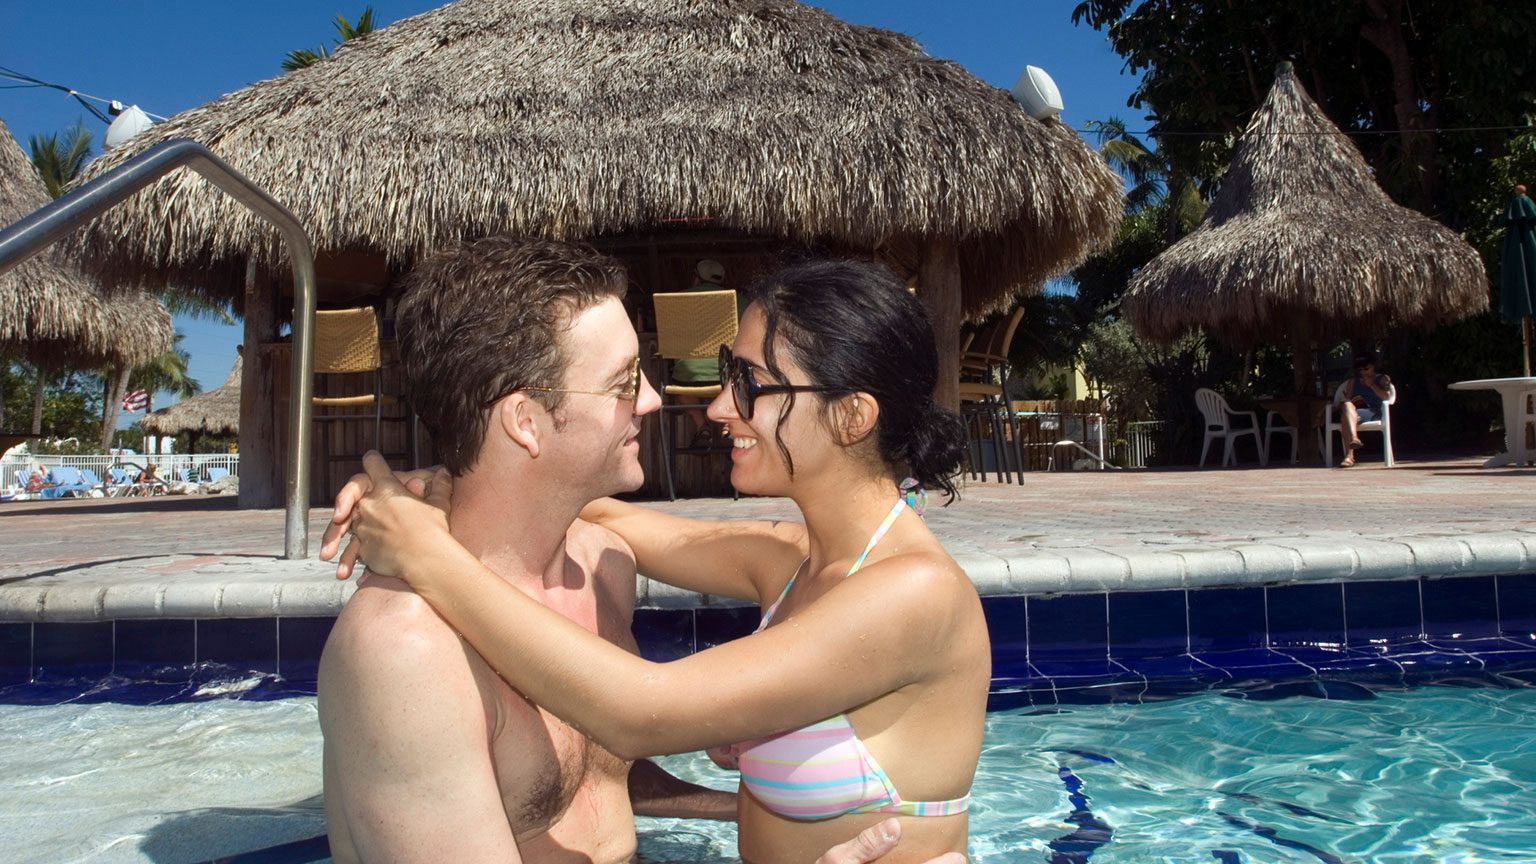 Happy couple embracing in hotel pool.